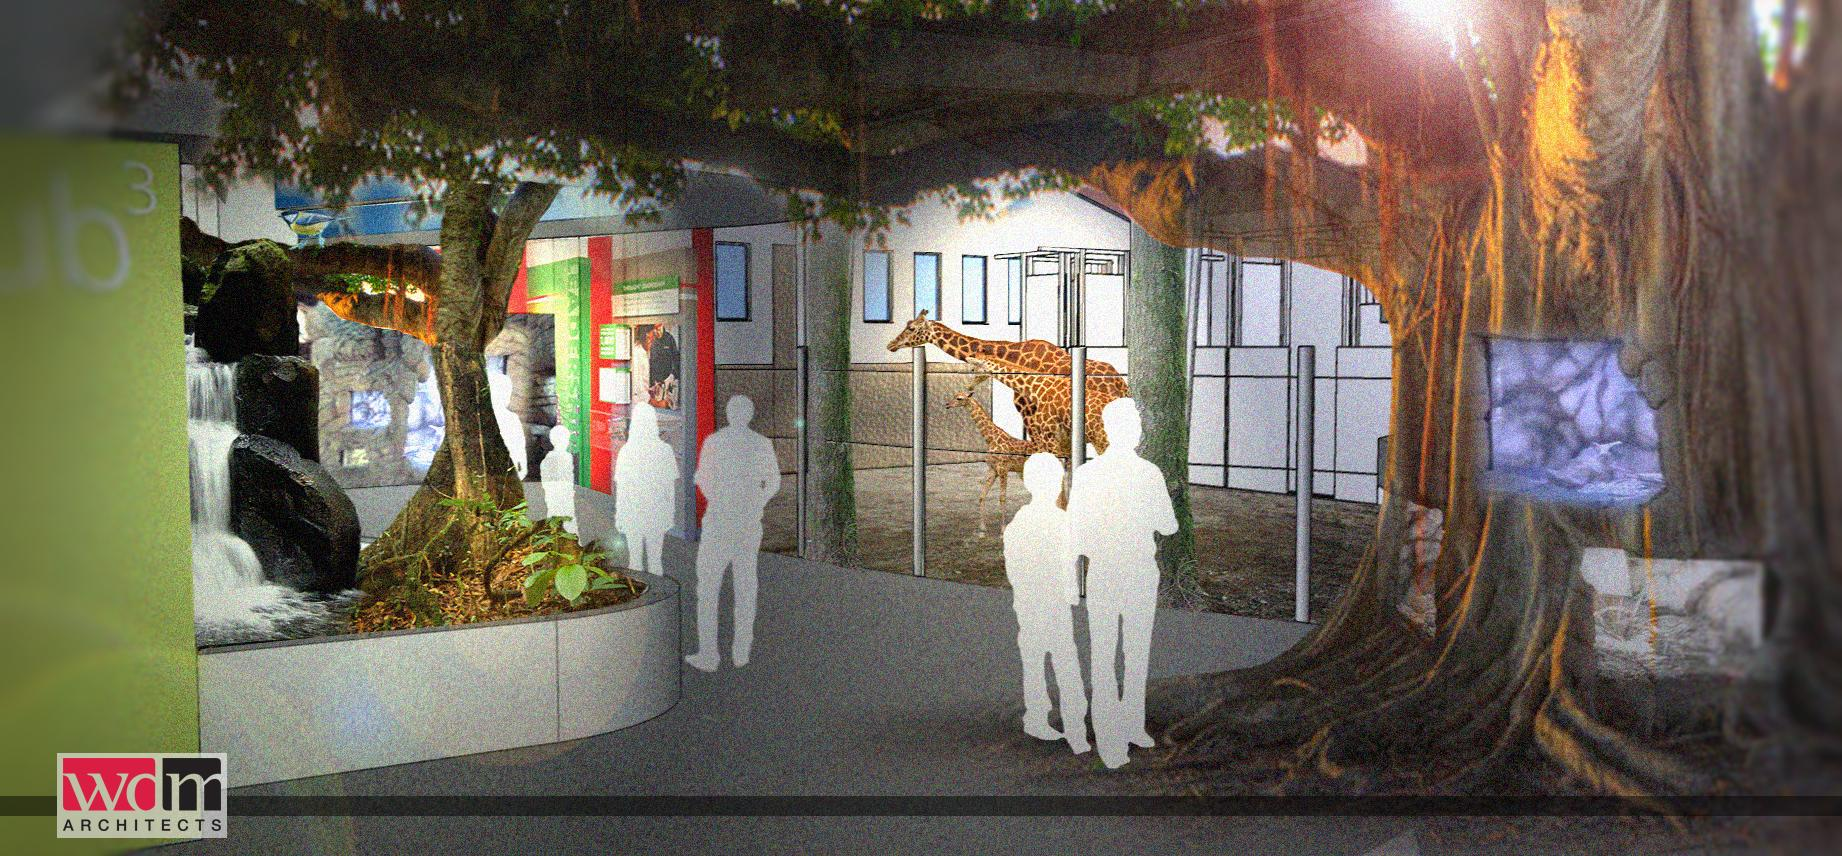 A rendering of the new Animals of the Savannah  exhibit planned for the first phase of Seneca Park Zoo's master renovation plan. (Photo: Monroe County)